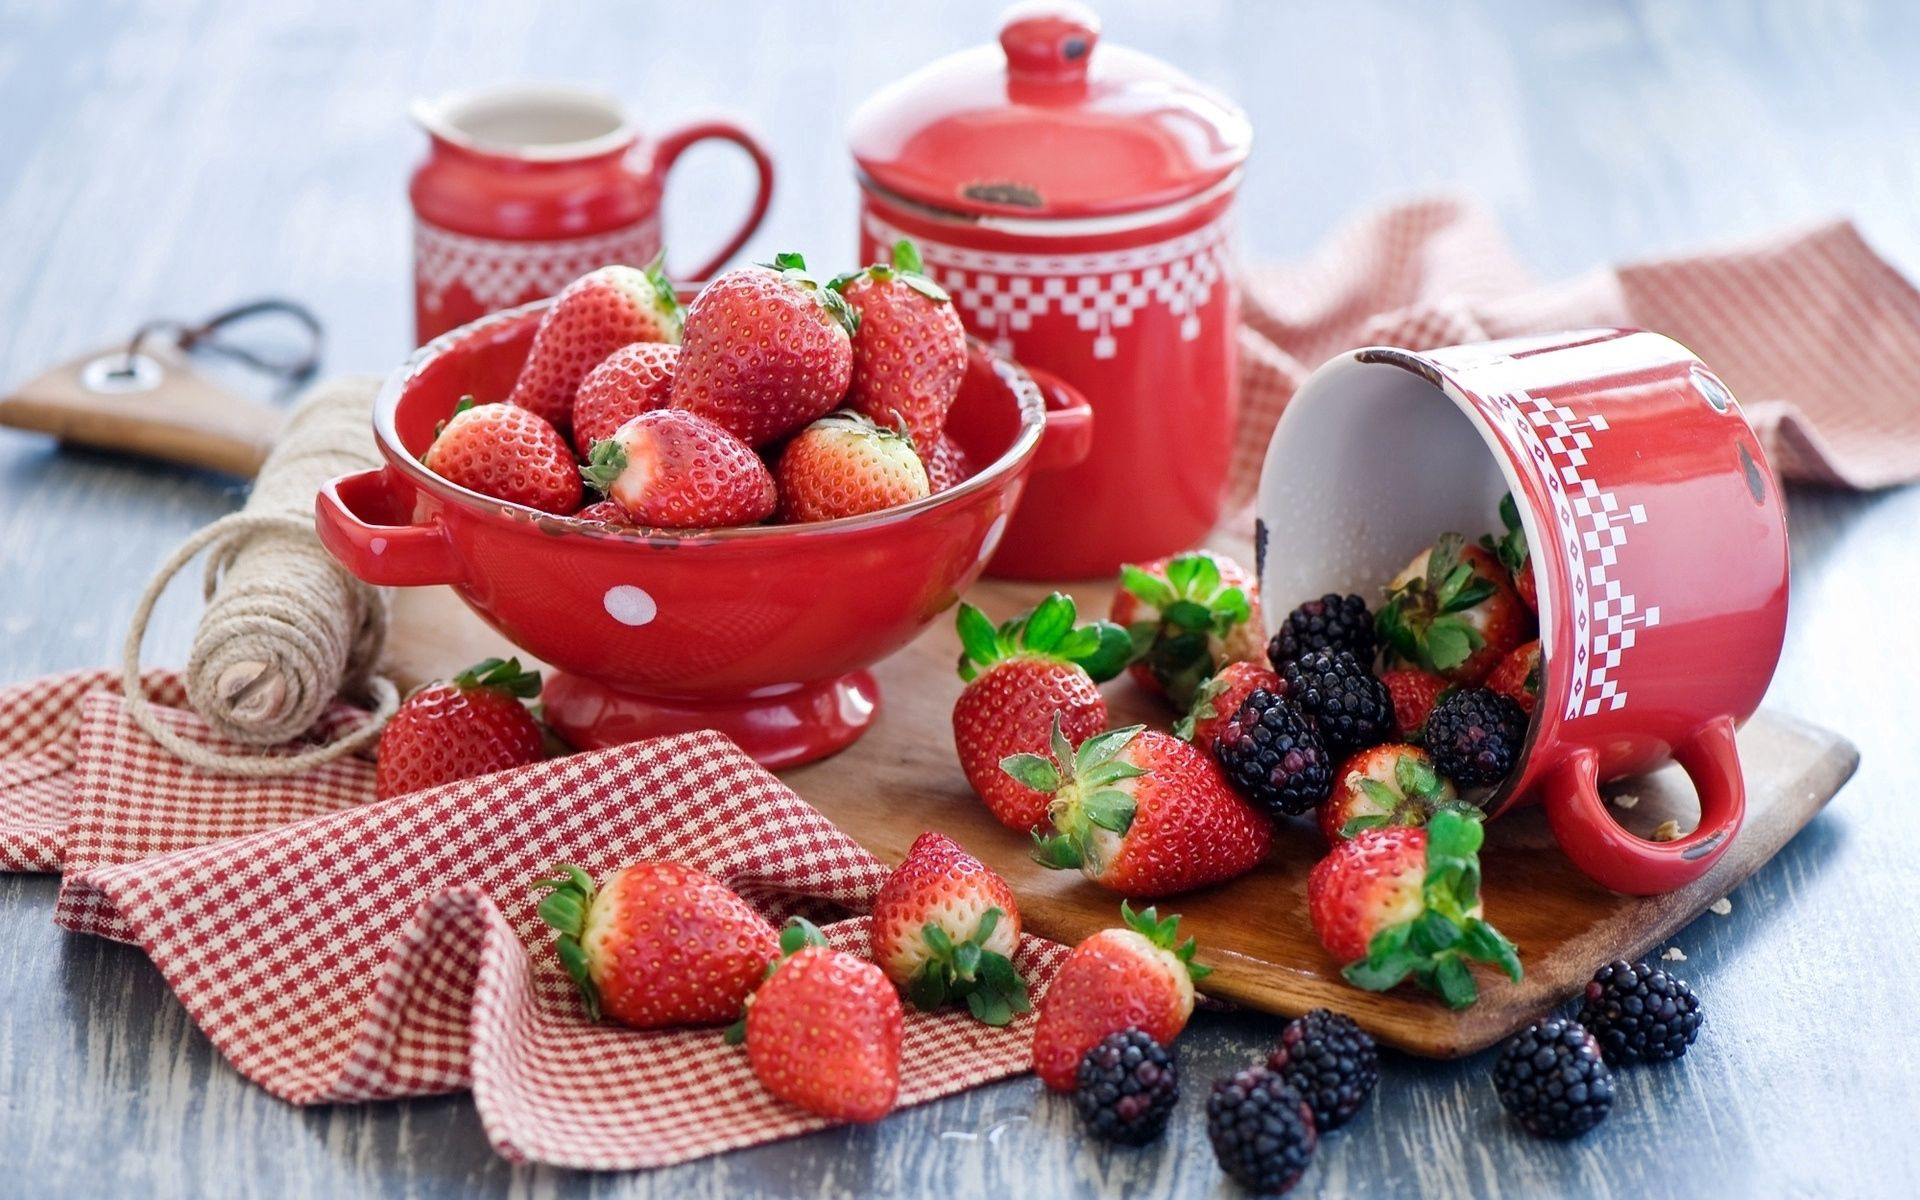 107238 download wallpaper Strawberry, Food, Tablewares, Berries, Blackberry, Service screensavers and pictures for free